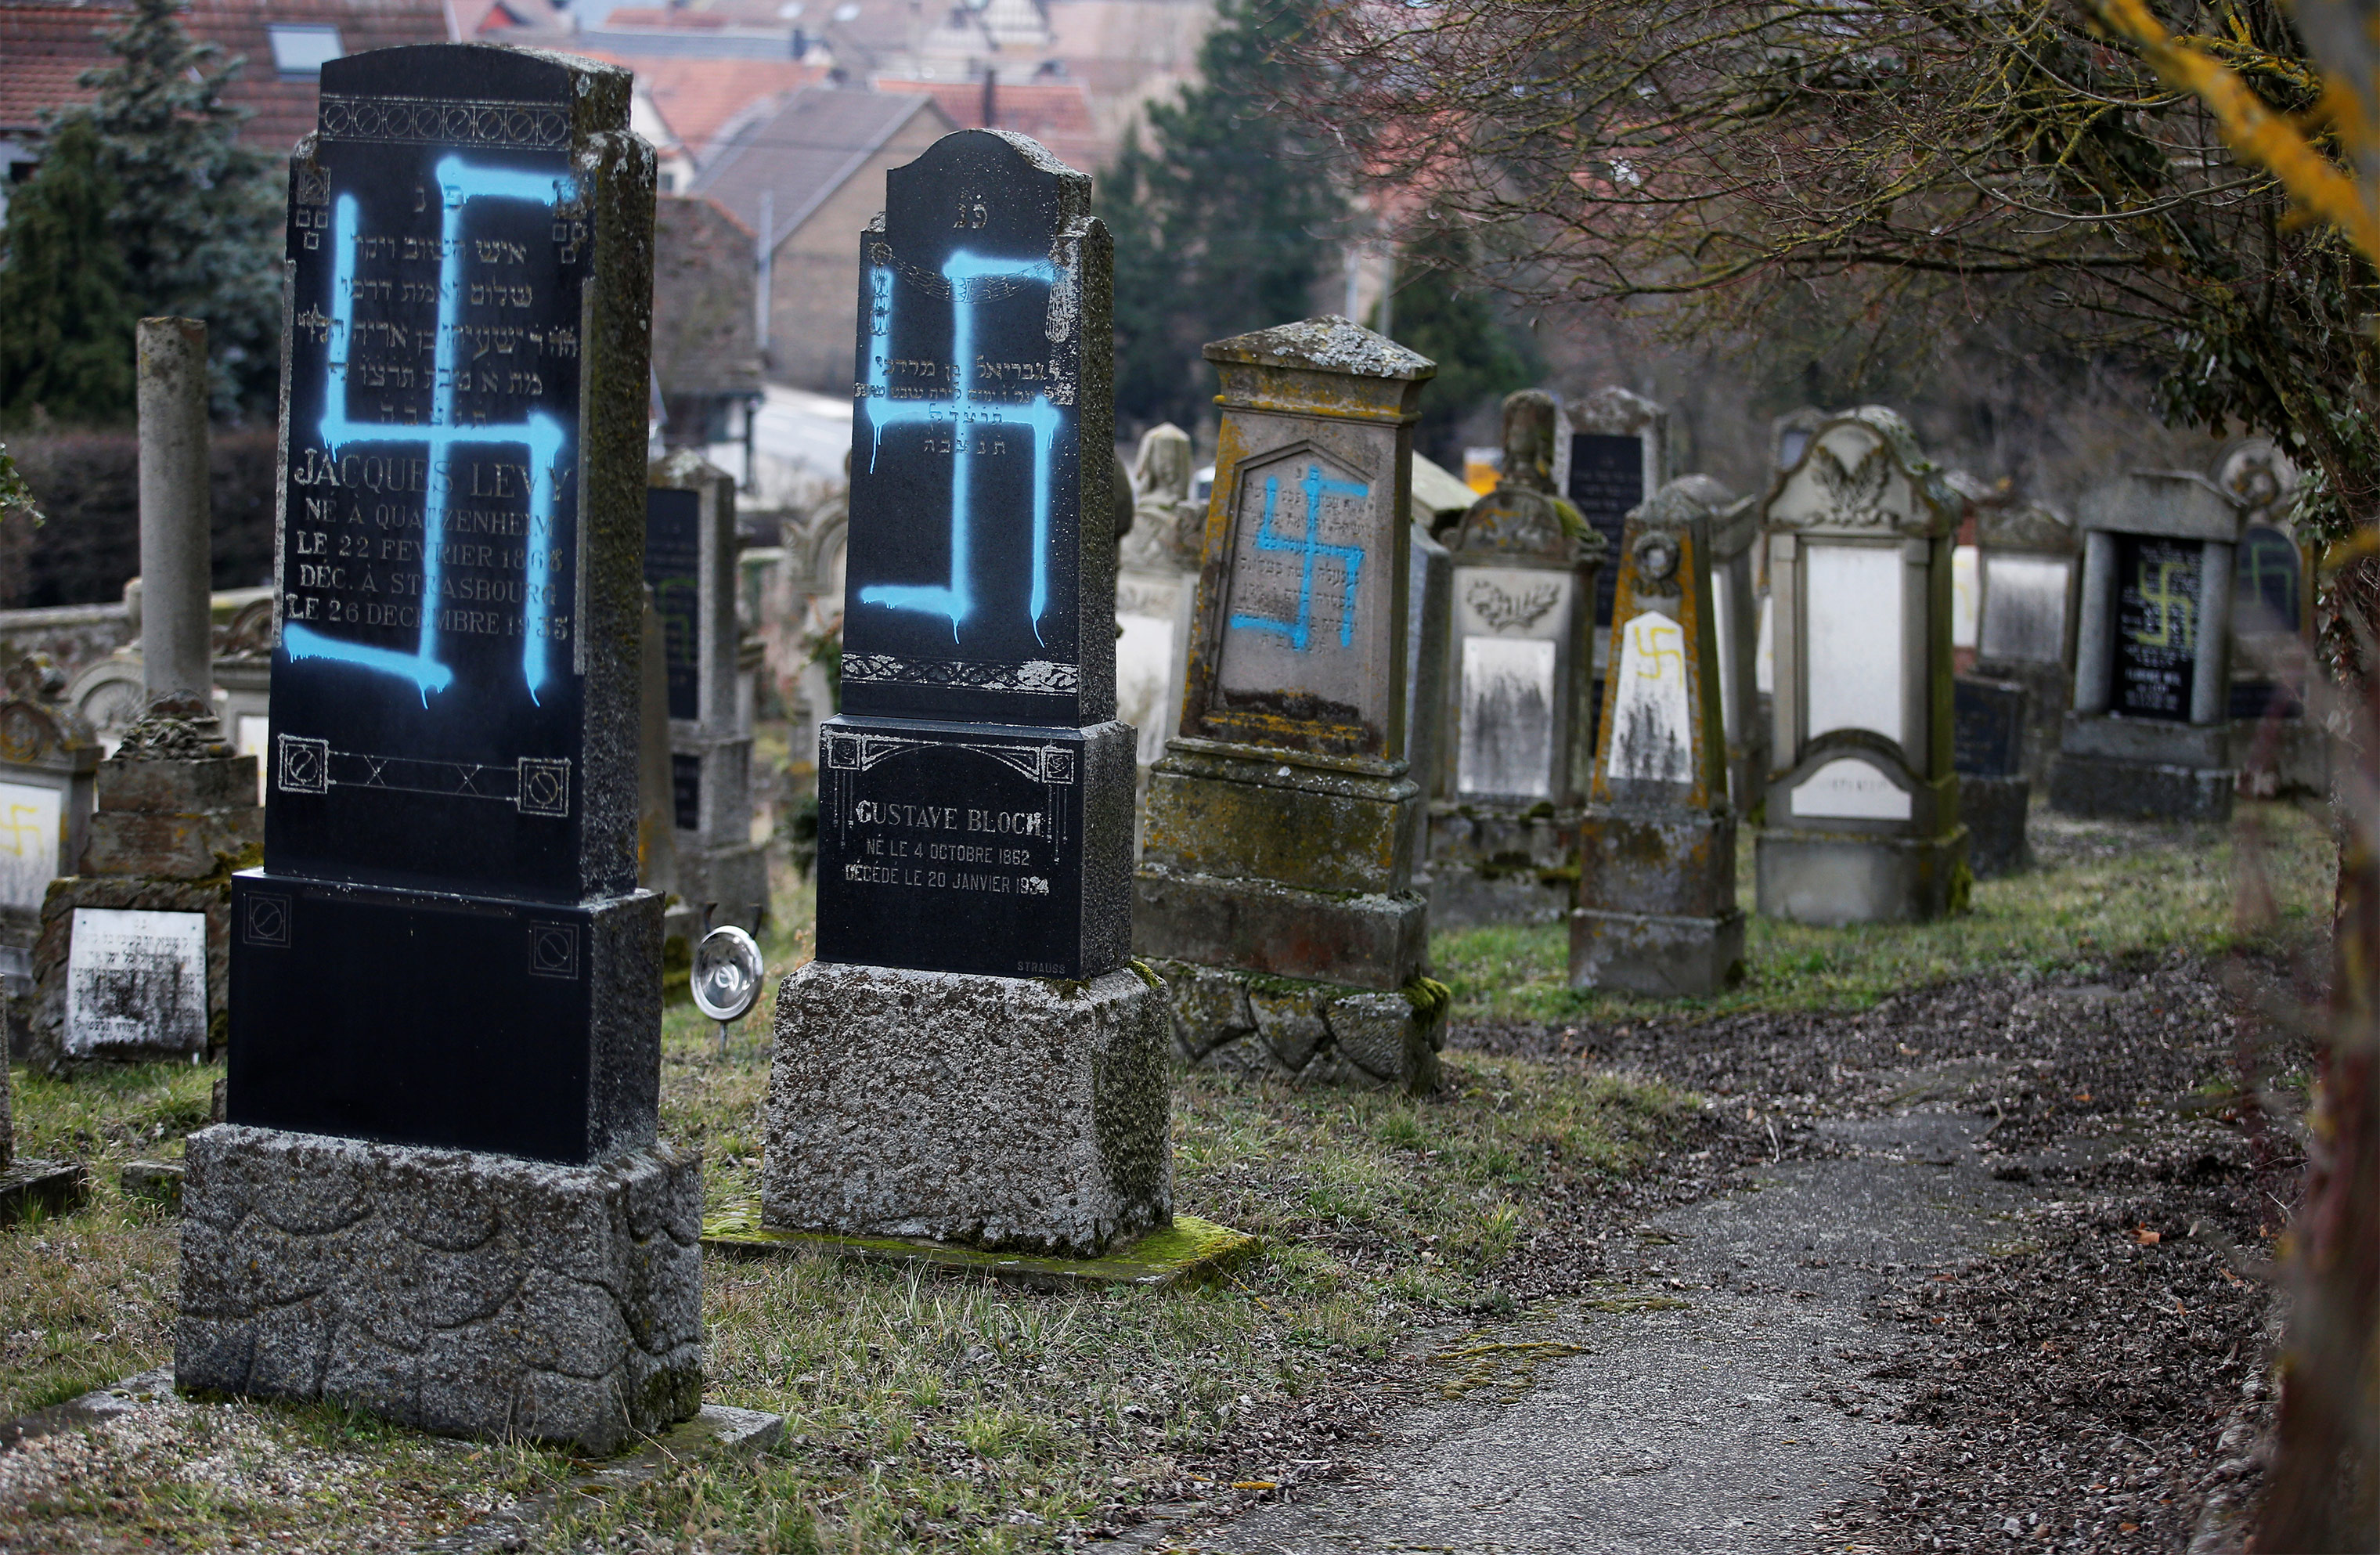 This past February, about 90 graves in a Jewish cemetery in Eastern France were desecrated with swastikas. After visiting the cemetery, French President Emmanuel Macron deemed anti-Semitism the worst it's been since the Nazi era.